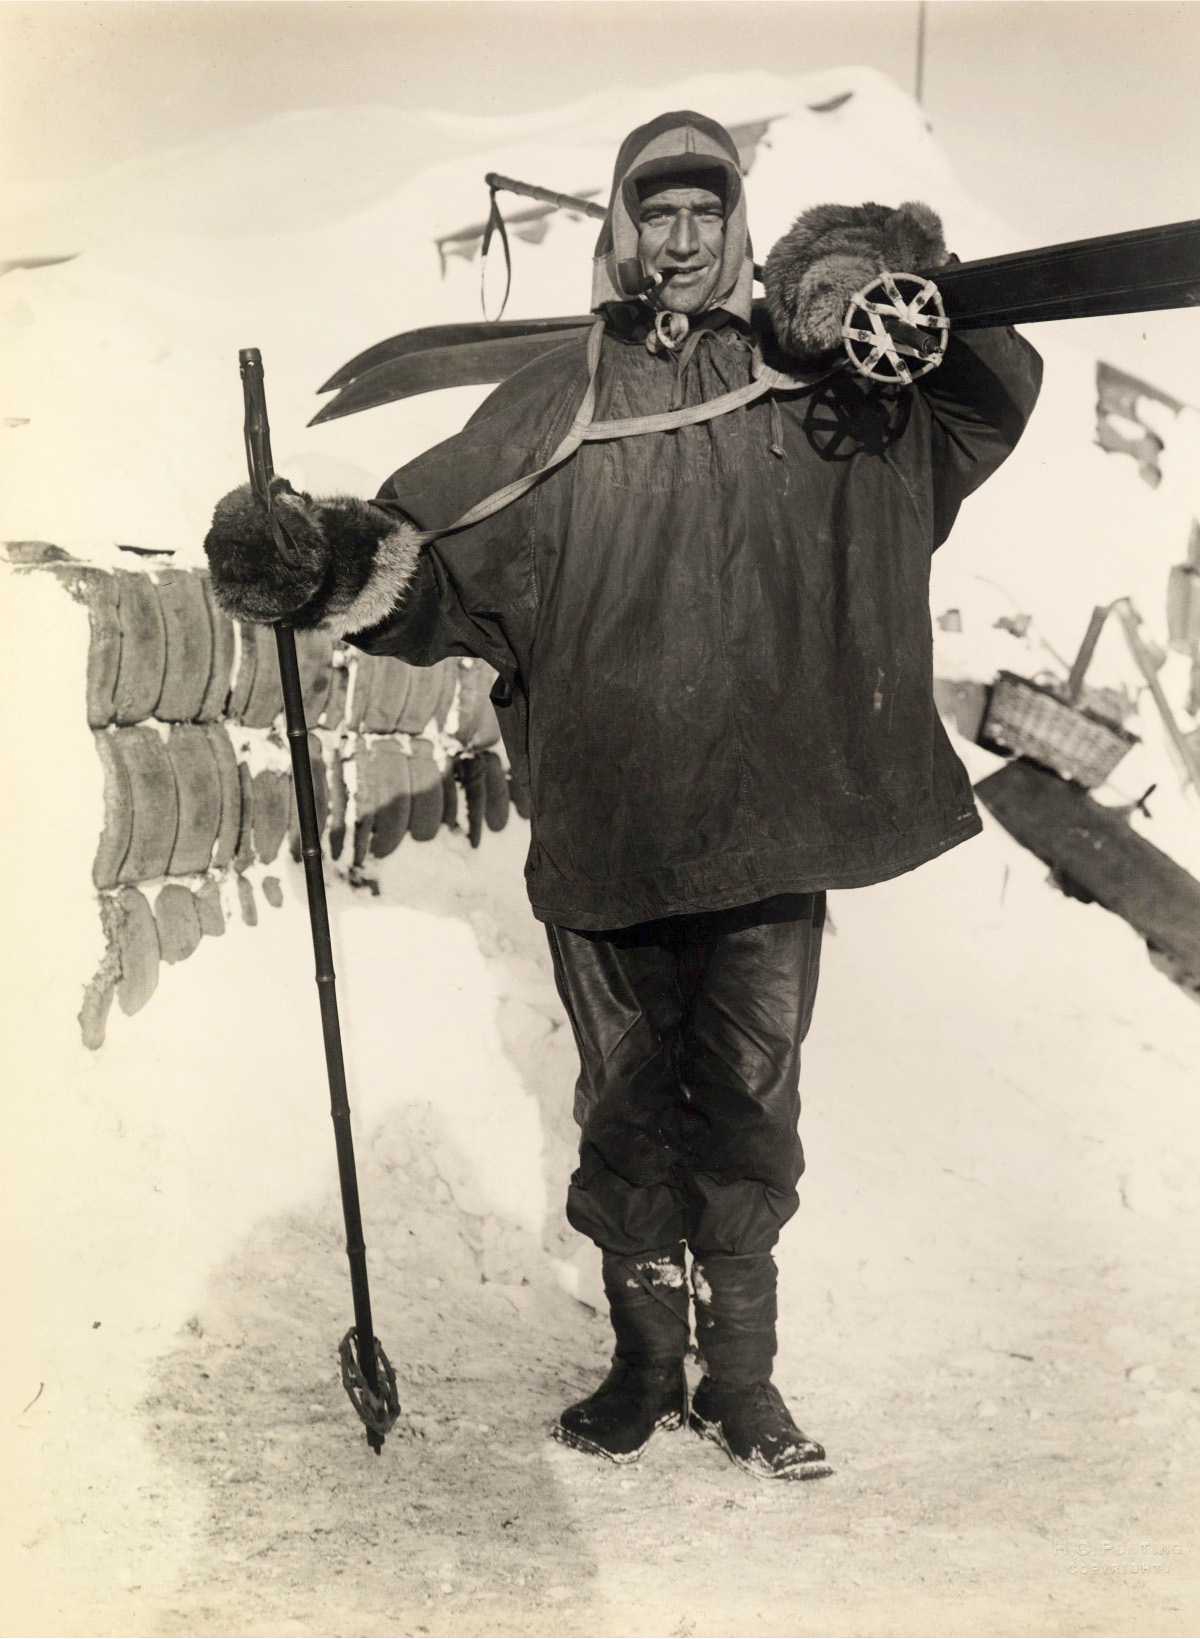 Petty Officer Crean, Scott's Antarctic Expedition, c. 1911